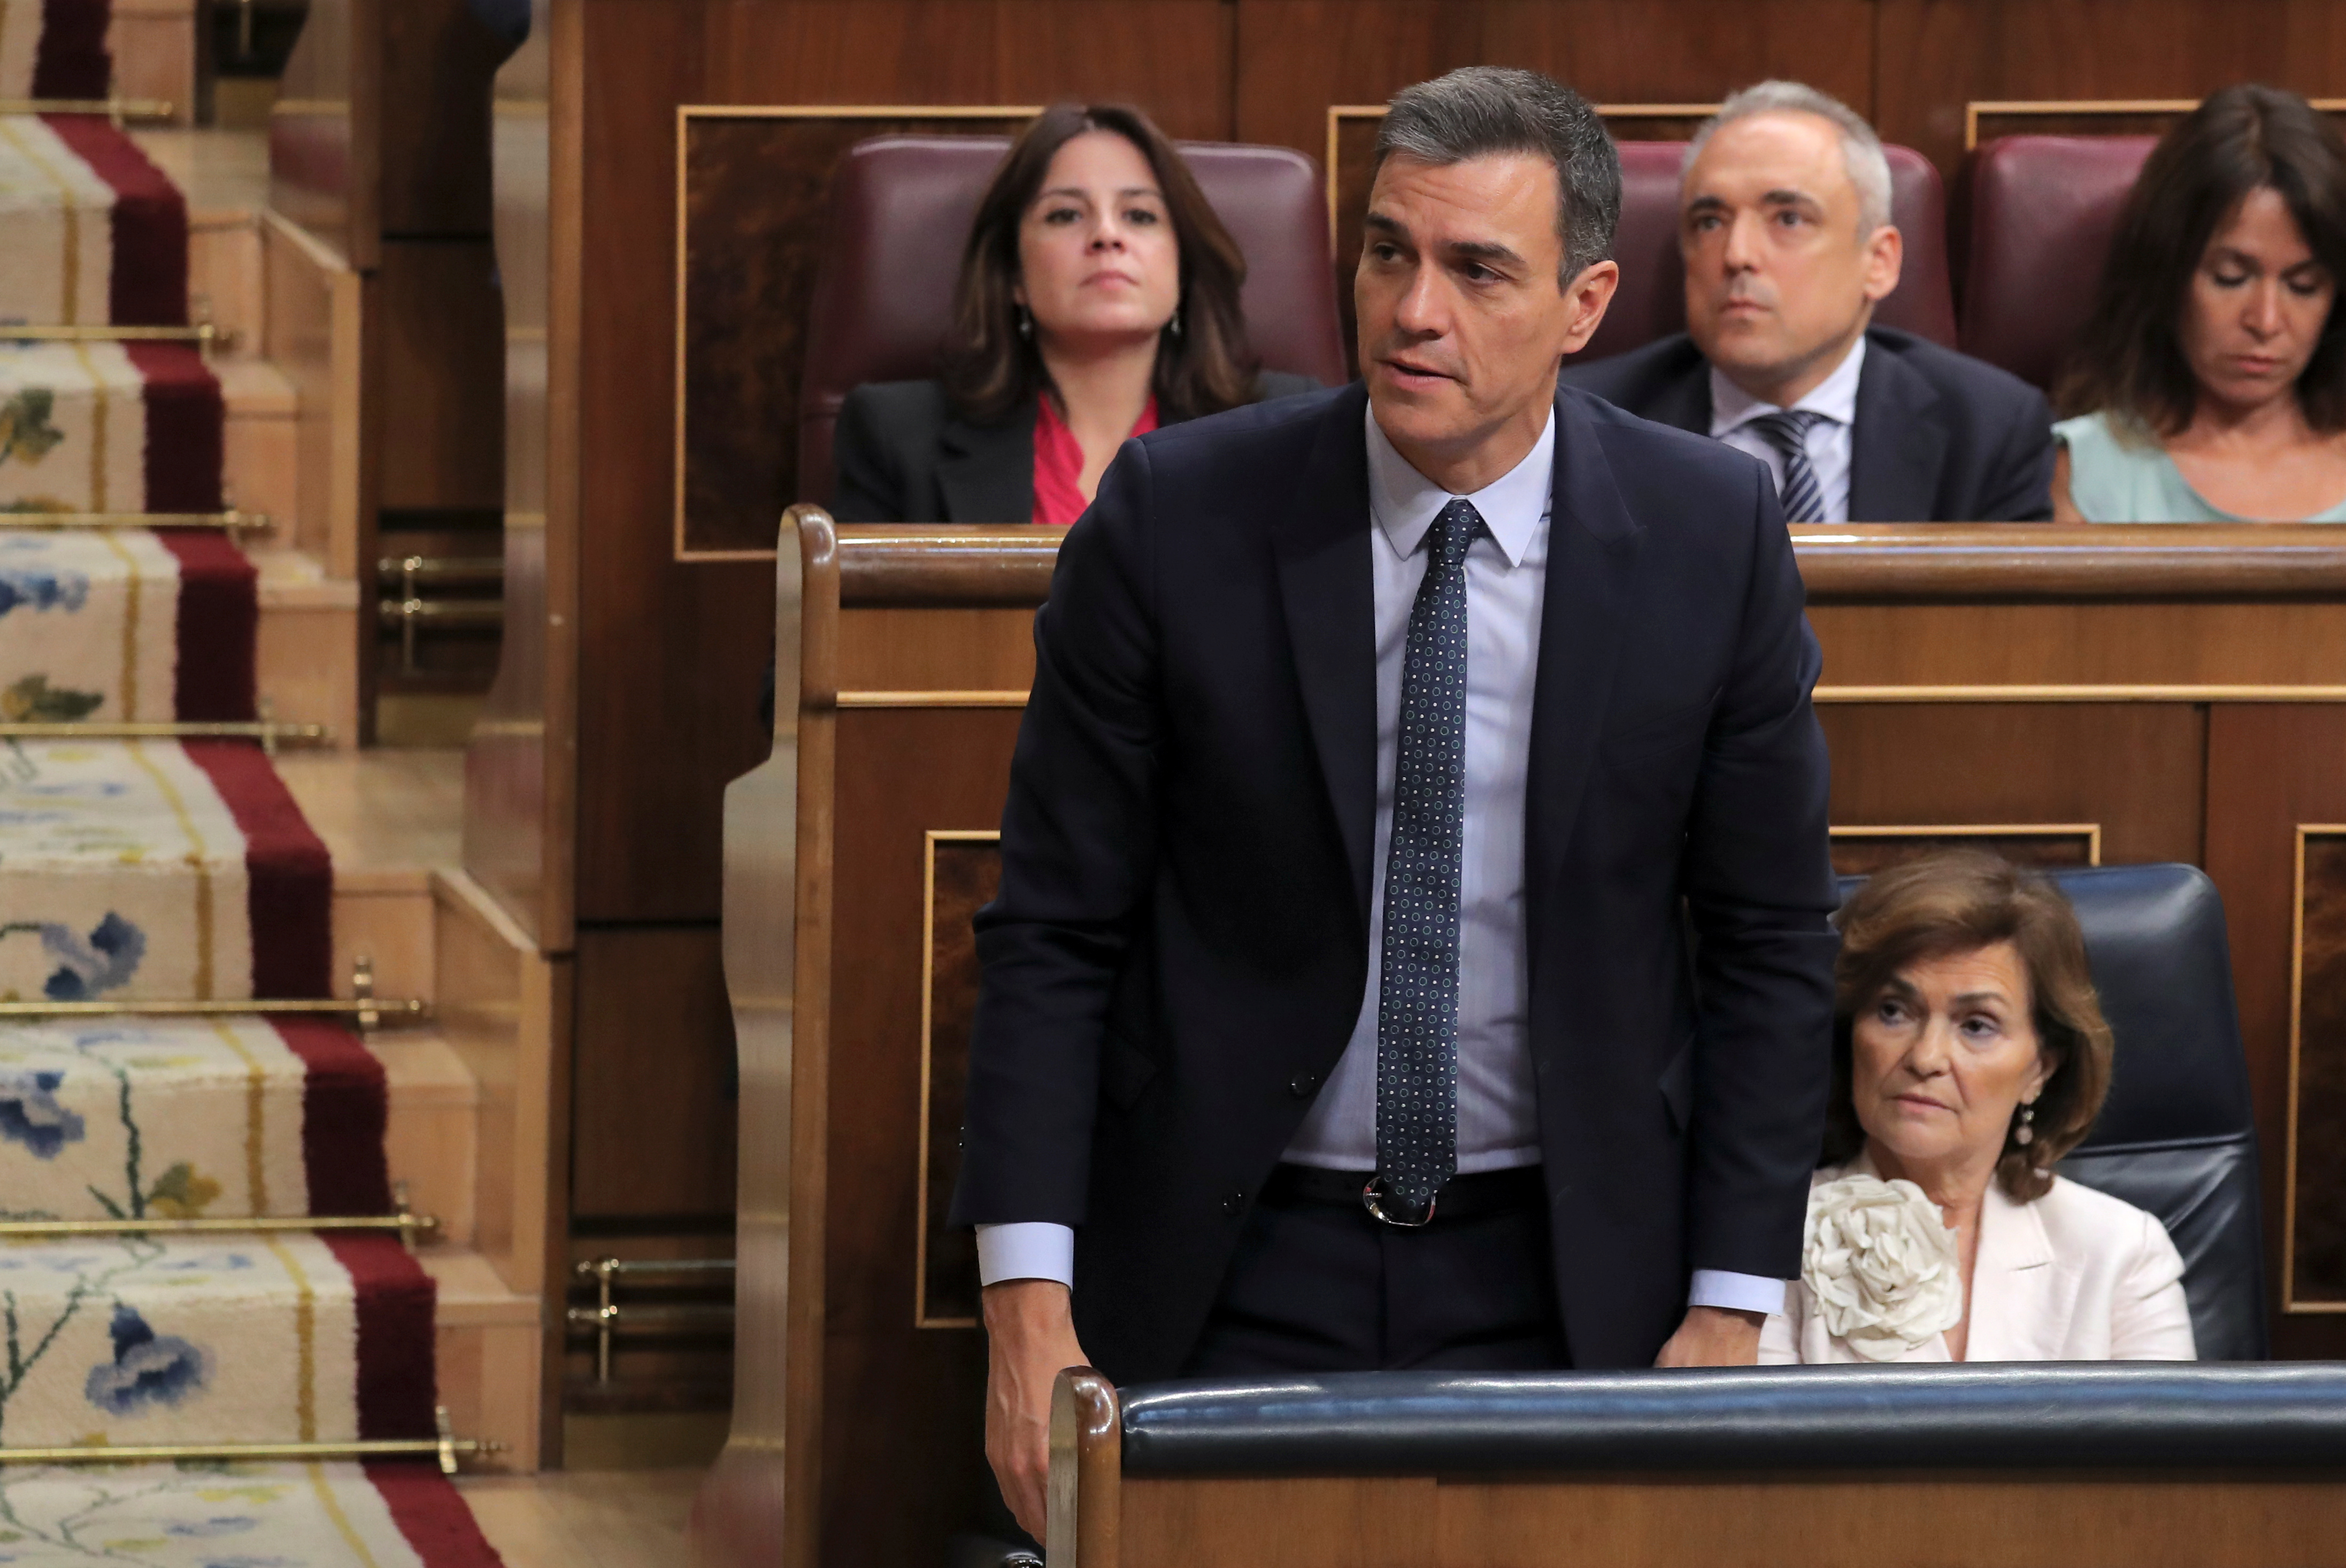 Spain's acting Prime Minister Pedro Sanchez votes during the second day of the investiture debate at the Parliament in Madrid, Spain, July 23, 2019. REUTERS/Sergio Perez